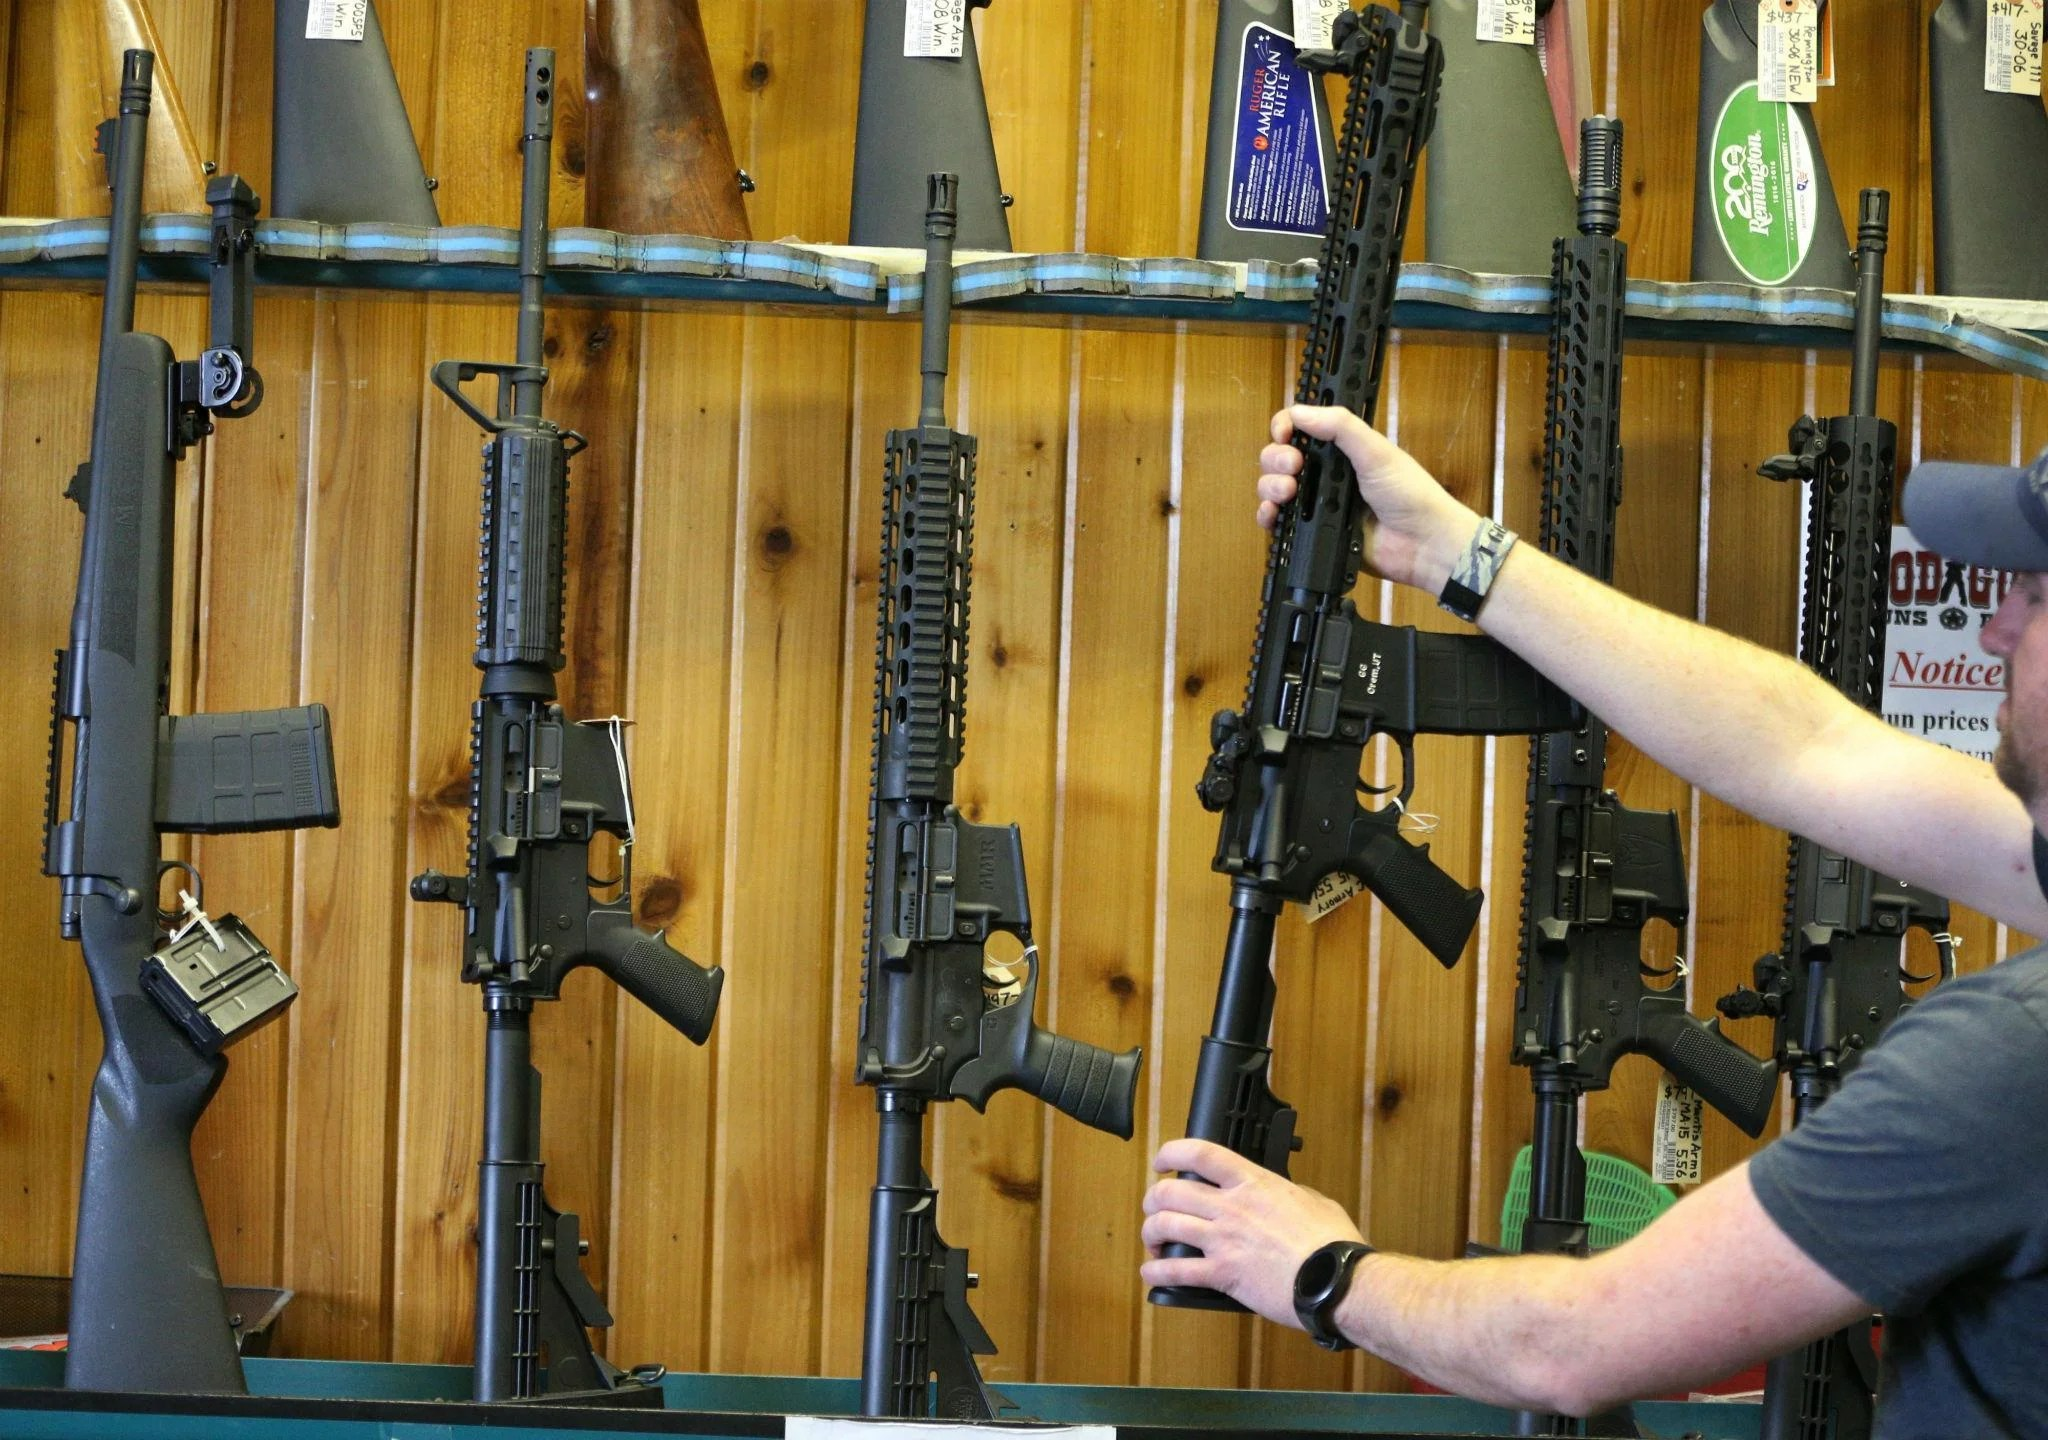 Semi-automatic AR-15's are for sale in Orem, Utah